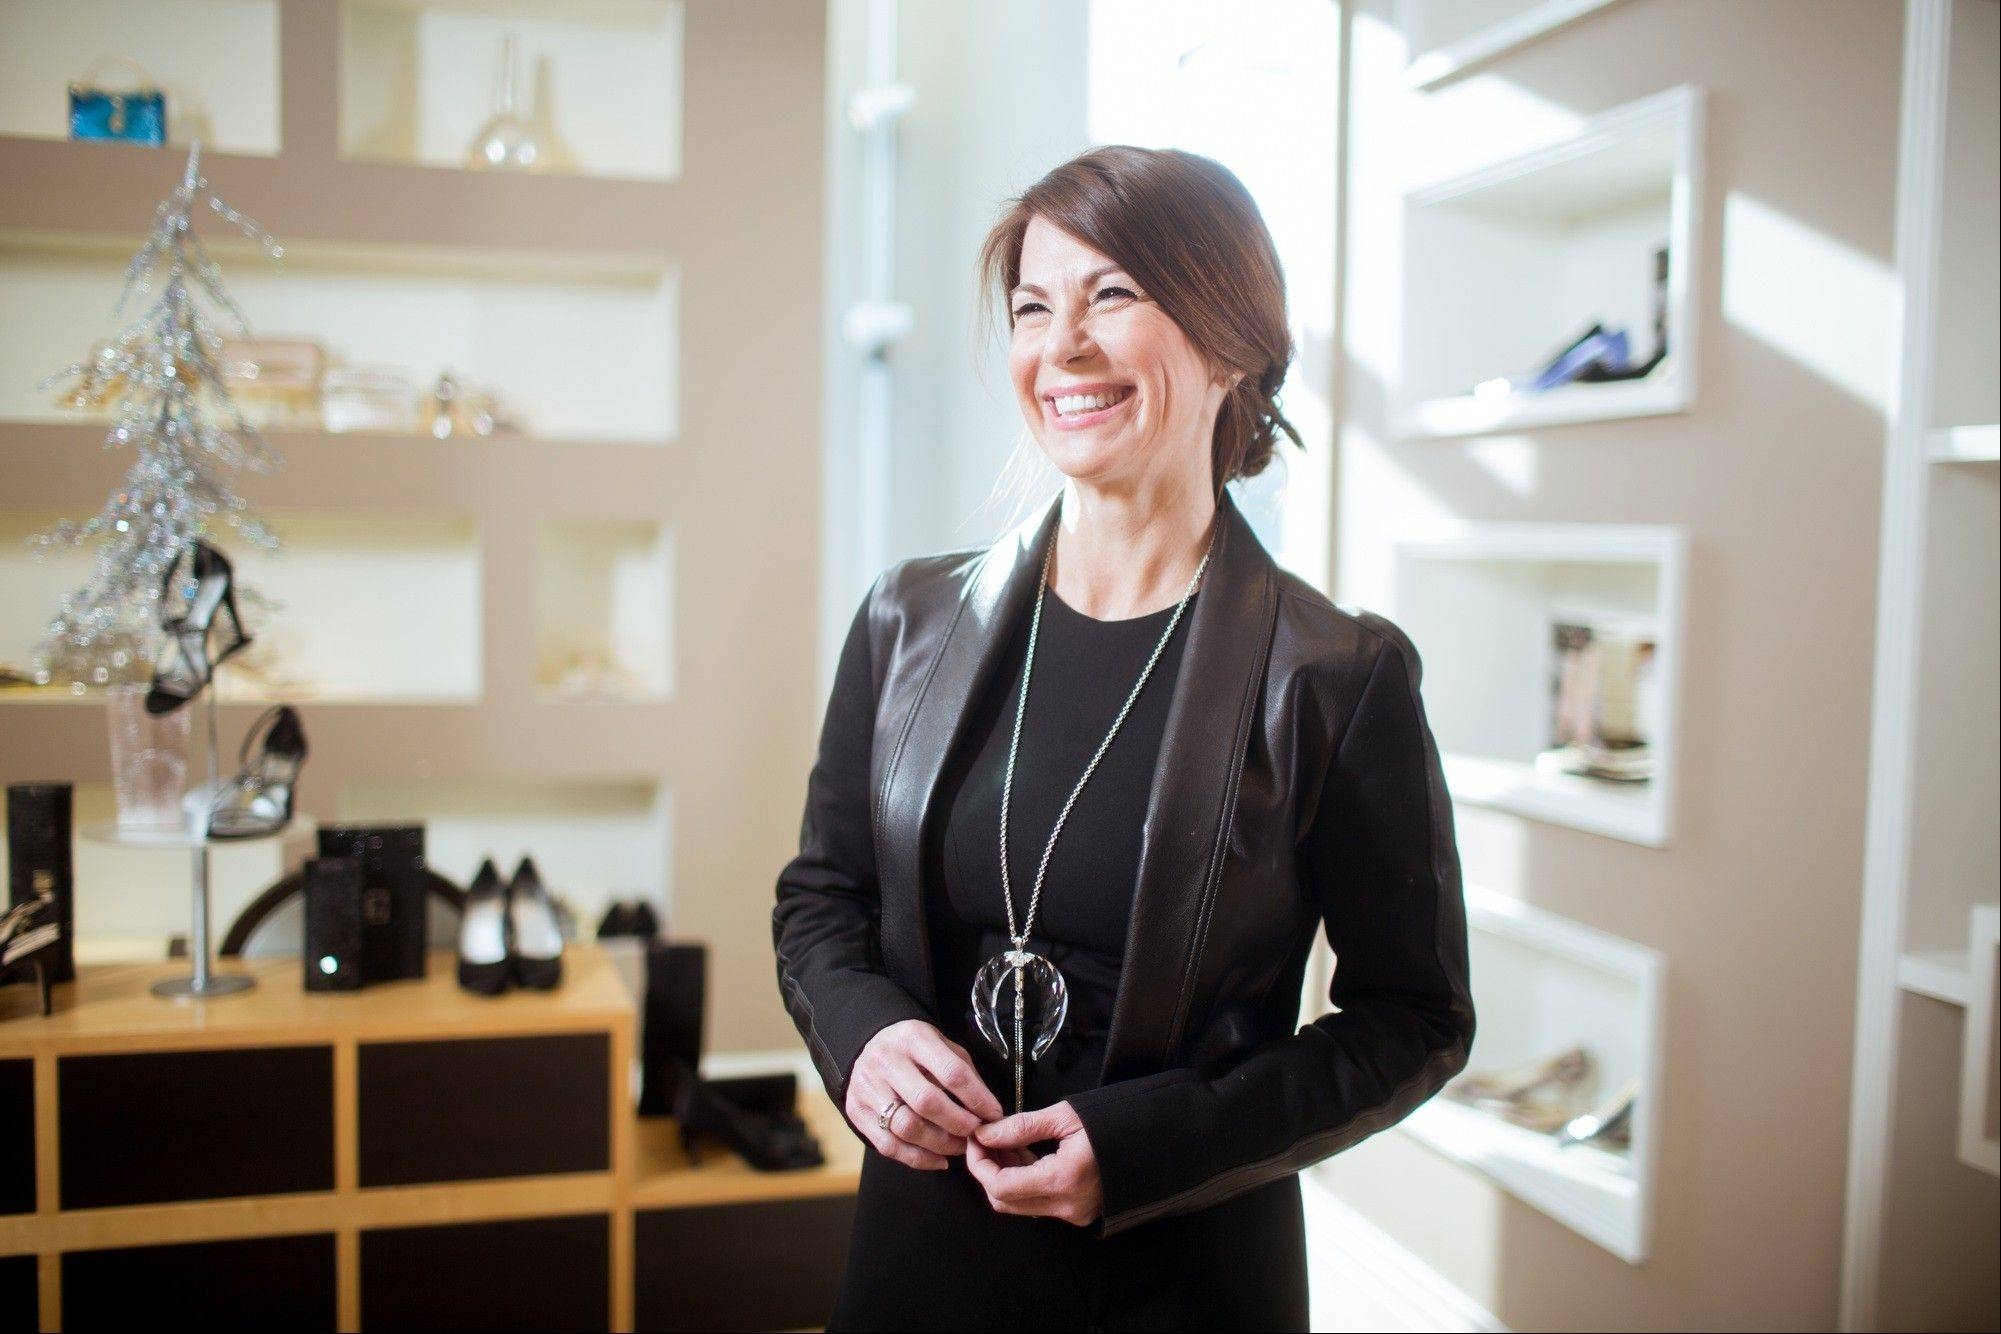 Rebecca Wierda, co-owner and president of Leigh's, an upscale independent clothing retail in Grand Rapids, Mich., poses for a photo. Leigh's plans five parties including one Black Friday and another aimed at men shopping for wives and girlfriends.